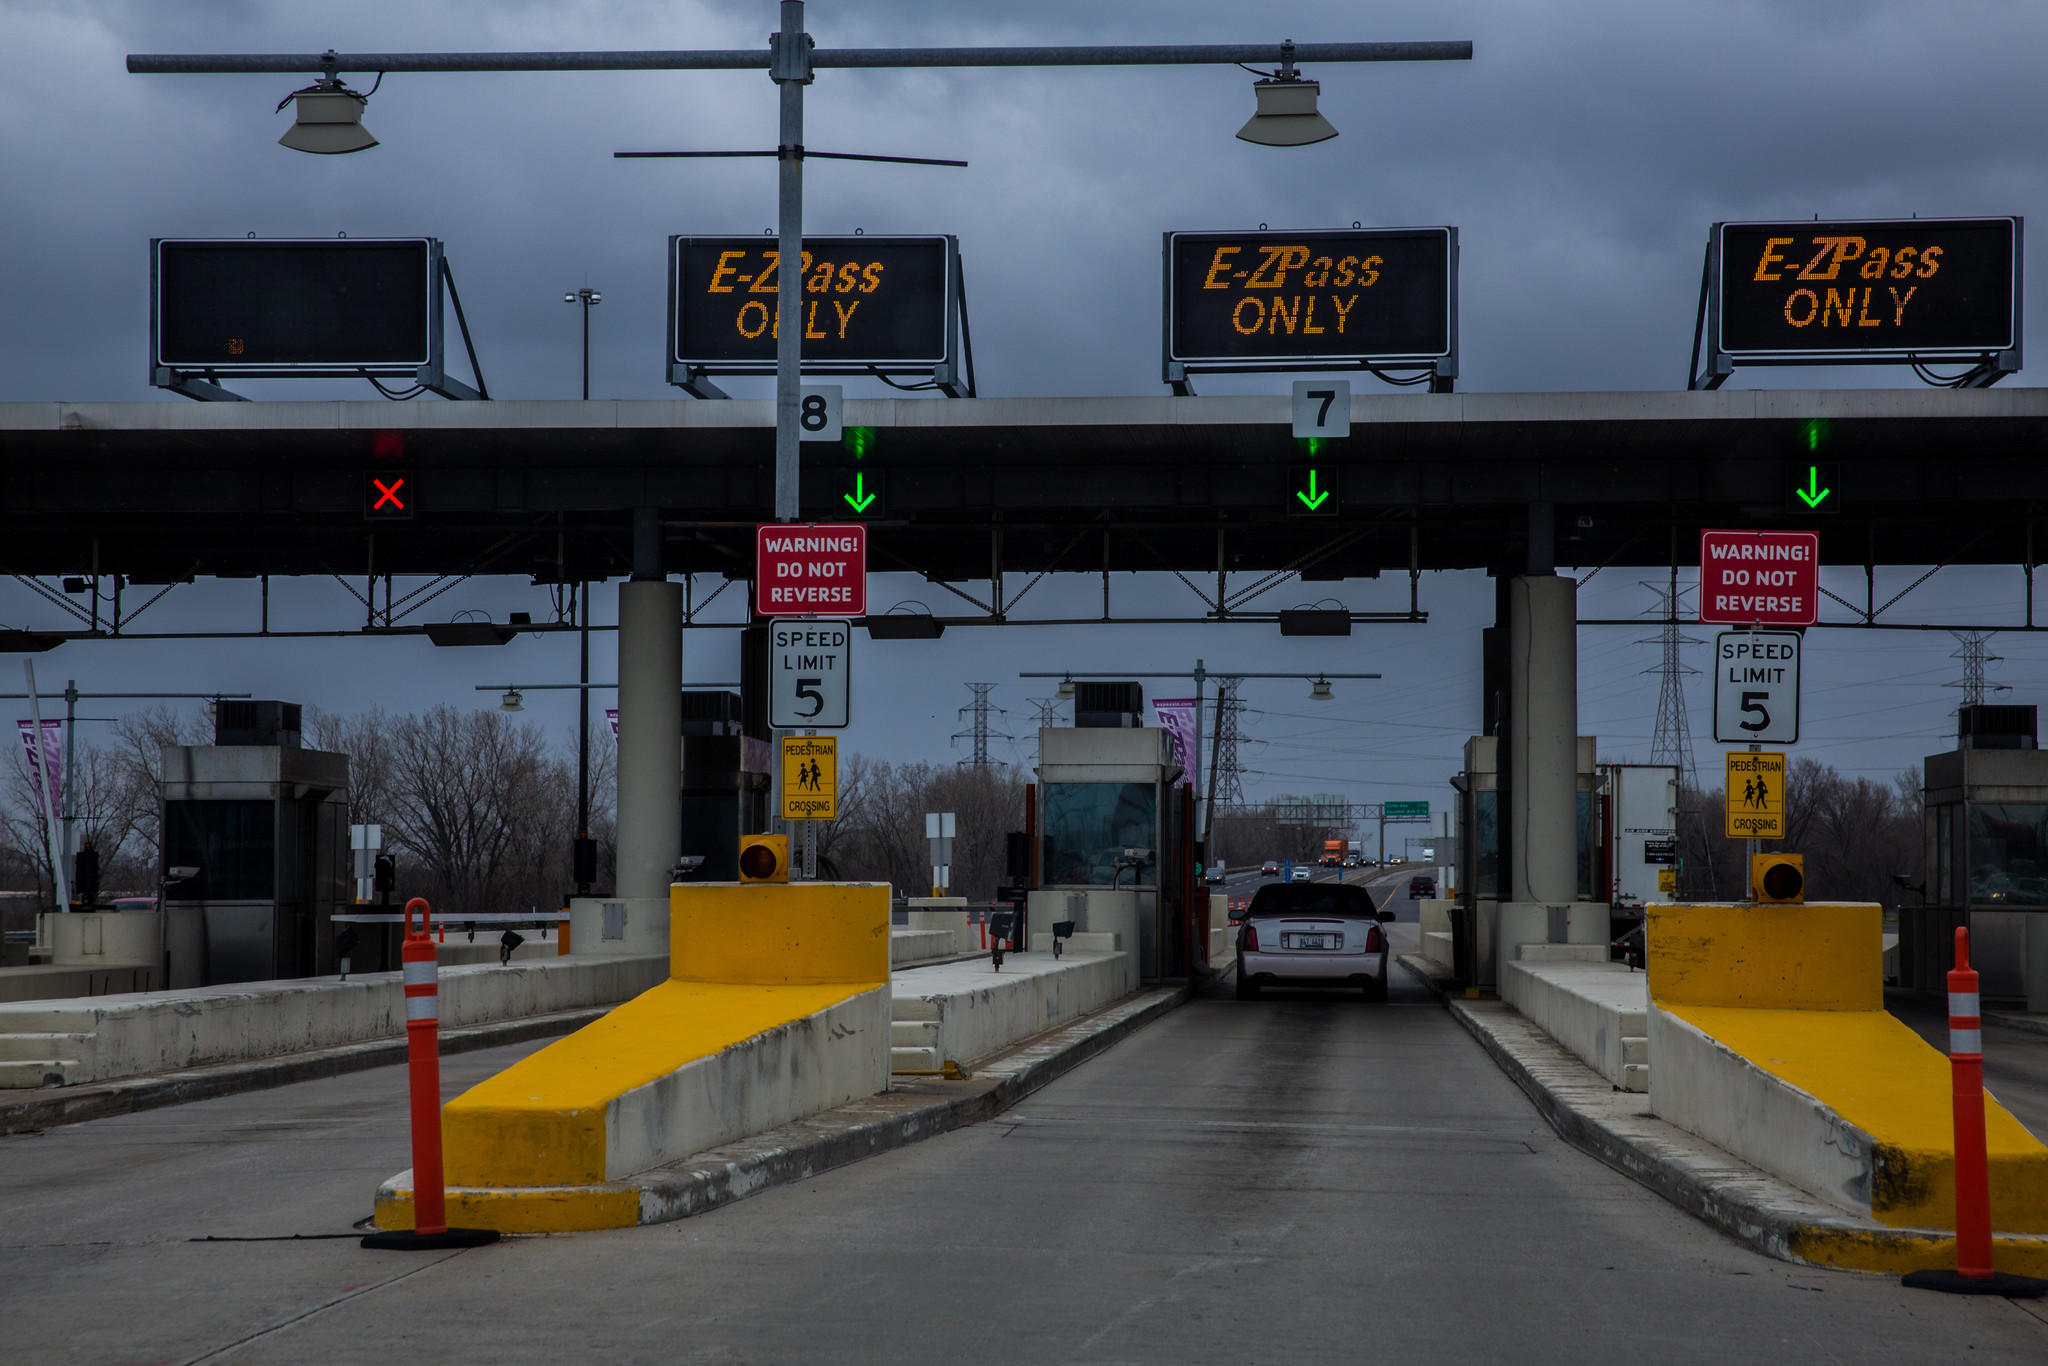 Cars are going through the I-PASS / E-ZPass toll-collection lanes on the Indiana Toll Road in Hammond on Friday, April 19, 2013. Illinois Tollway I-PASS customers are charged an extra 3 cents each time they pay a toll on the Chicago Skyway or the Indiana Toll Road. ID(Zbigniew Bzdak/Chicago Tribune)